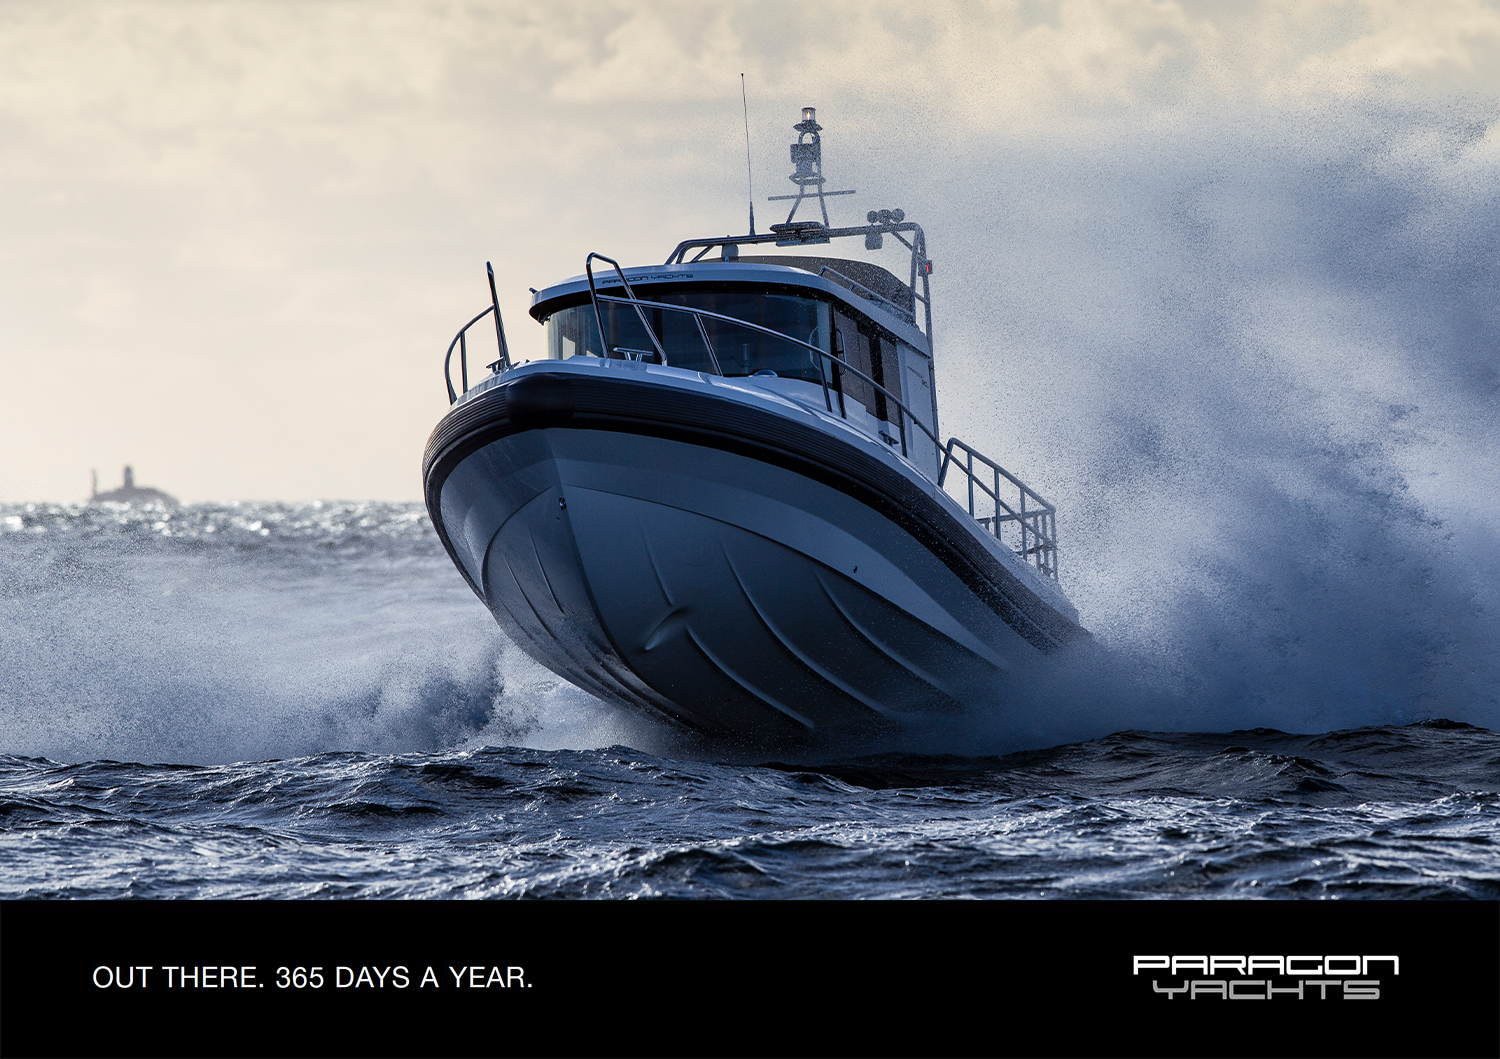 Paragon Yachts boat on the sea, the winner of motorboat awards 2016